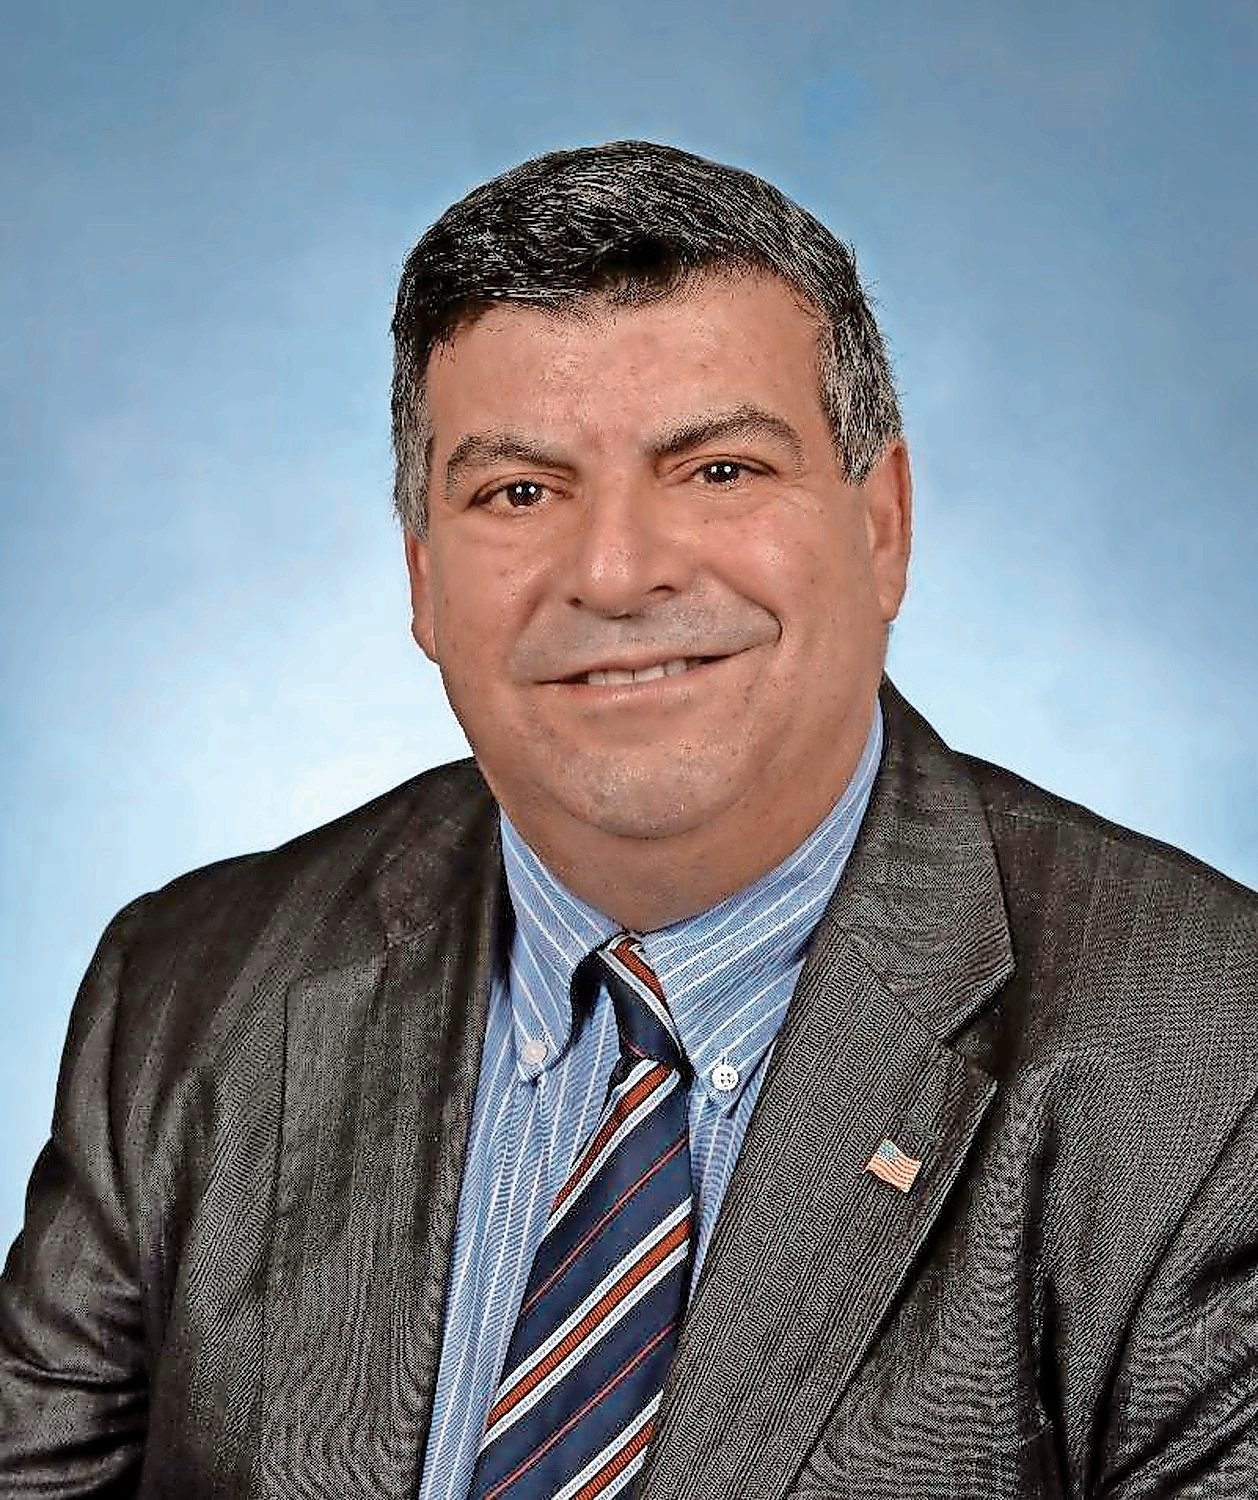 East Rockaway Mayor Bruno Romano